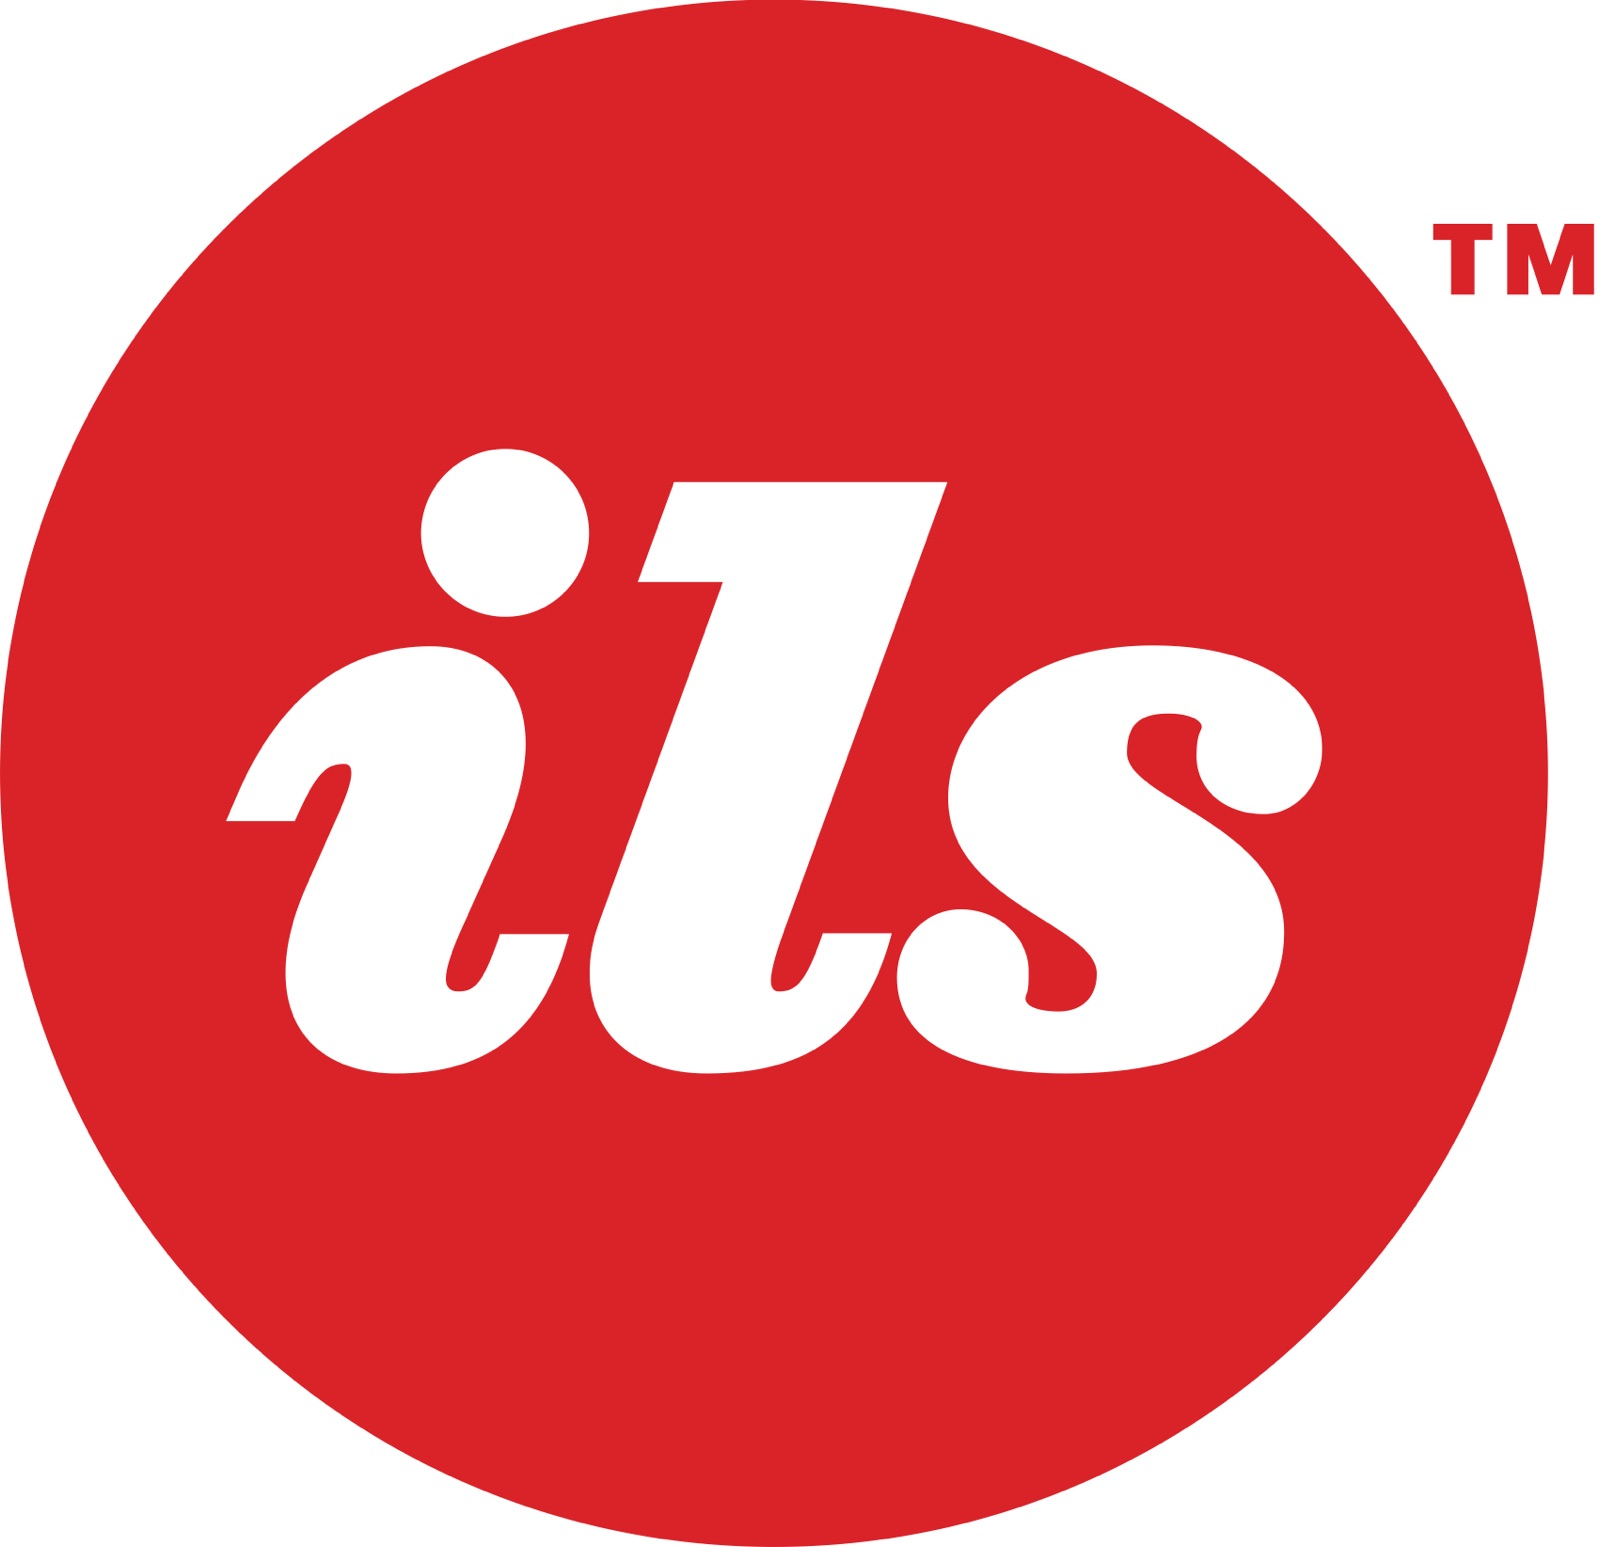 ils-group-logo.jpg.jpeg